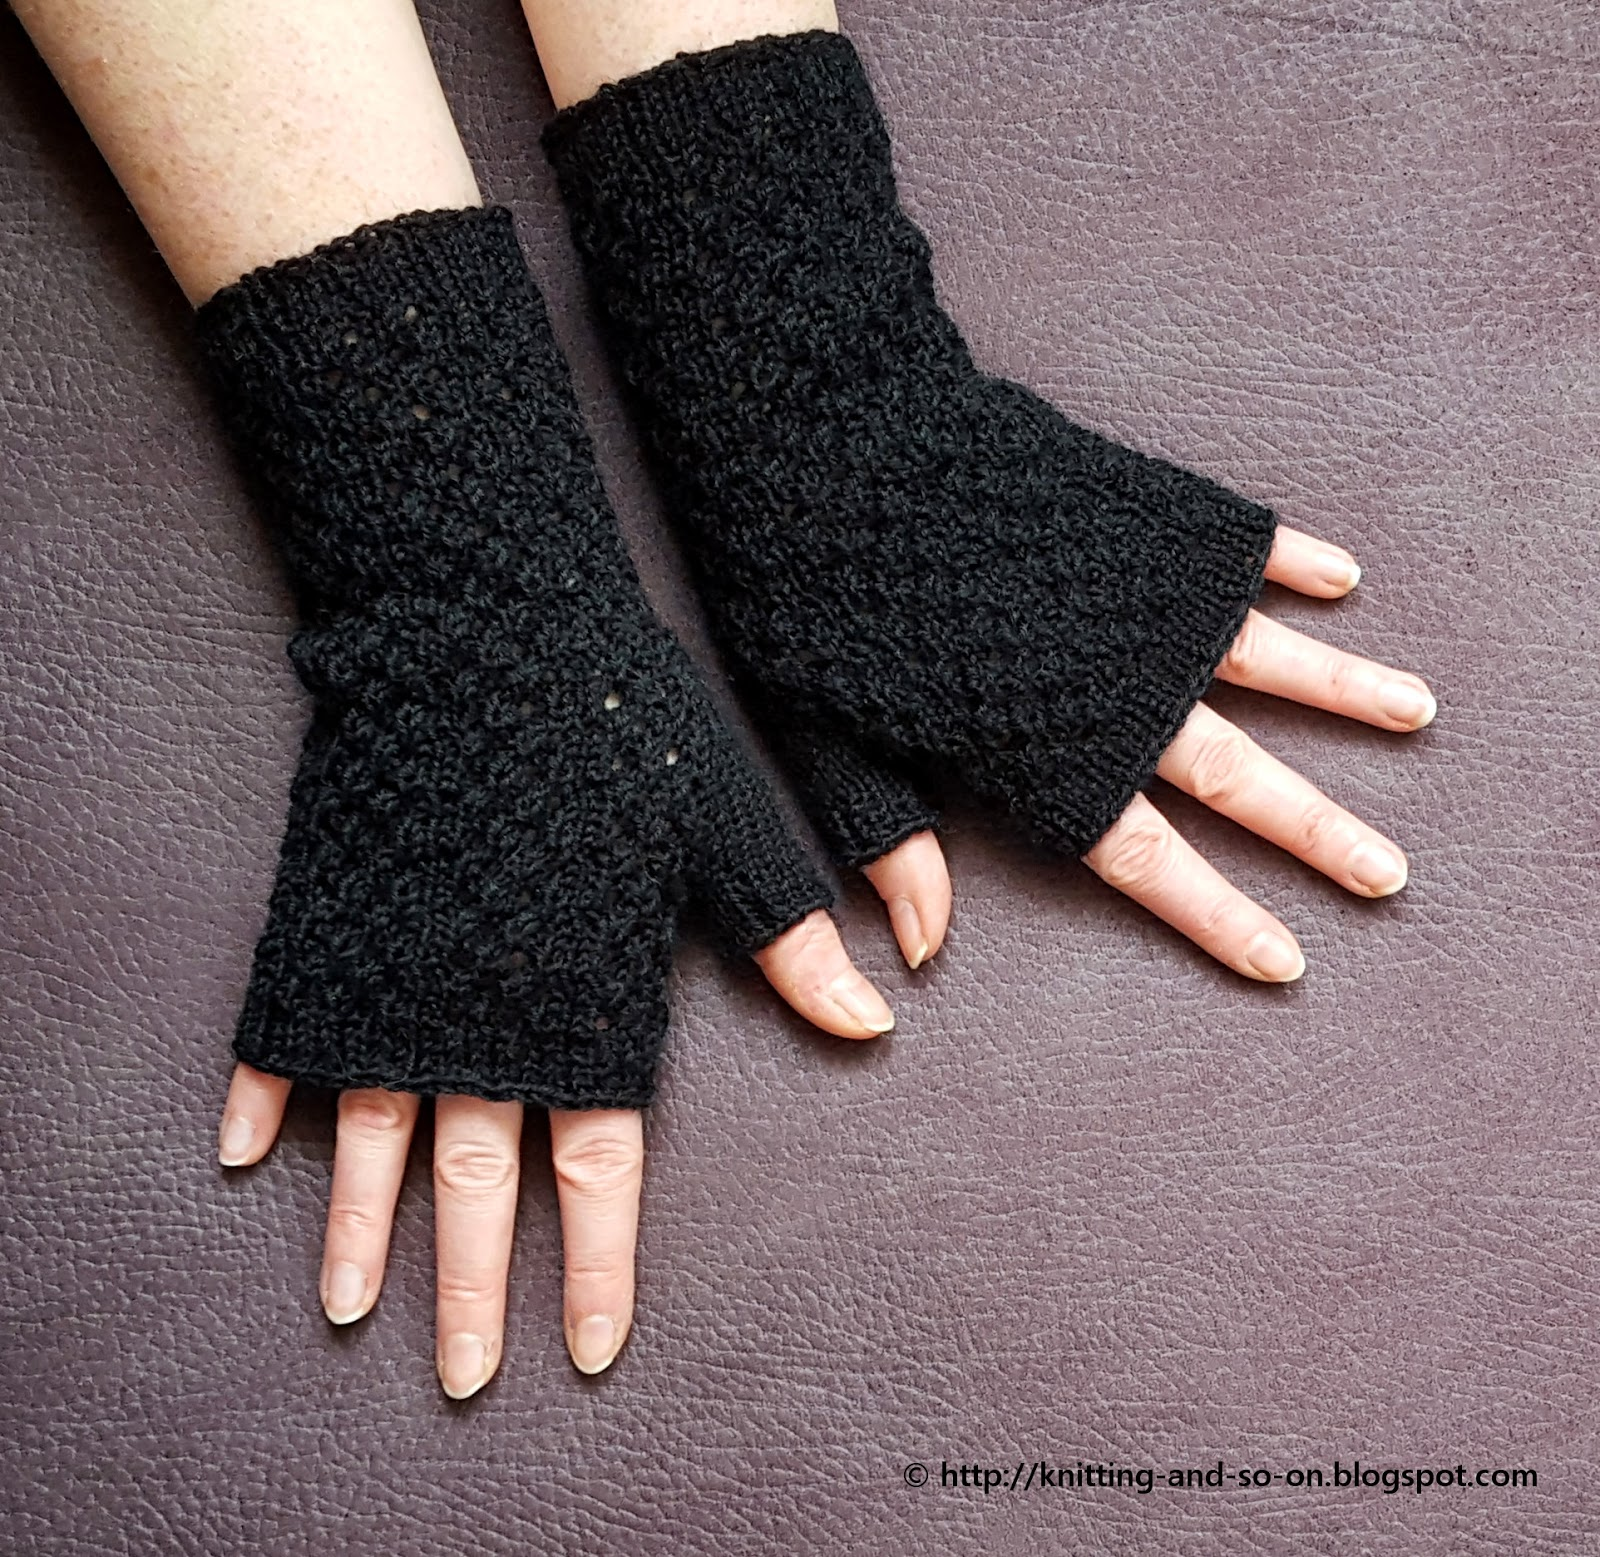 Knitting Abbreviations Yo Ssk : Knitting and so on widows weeds fingerless gloves